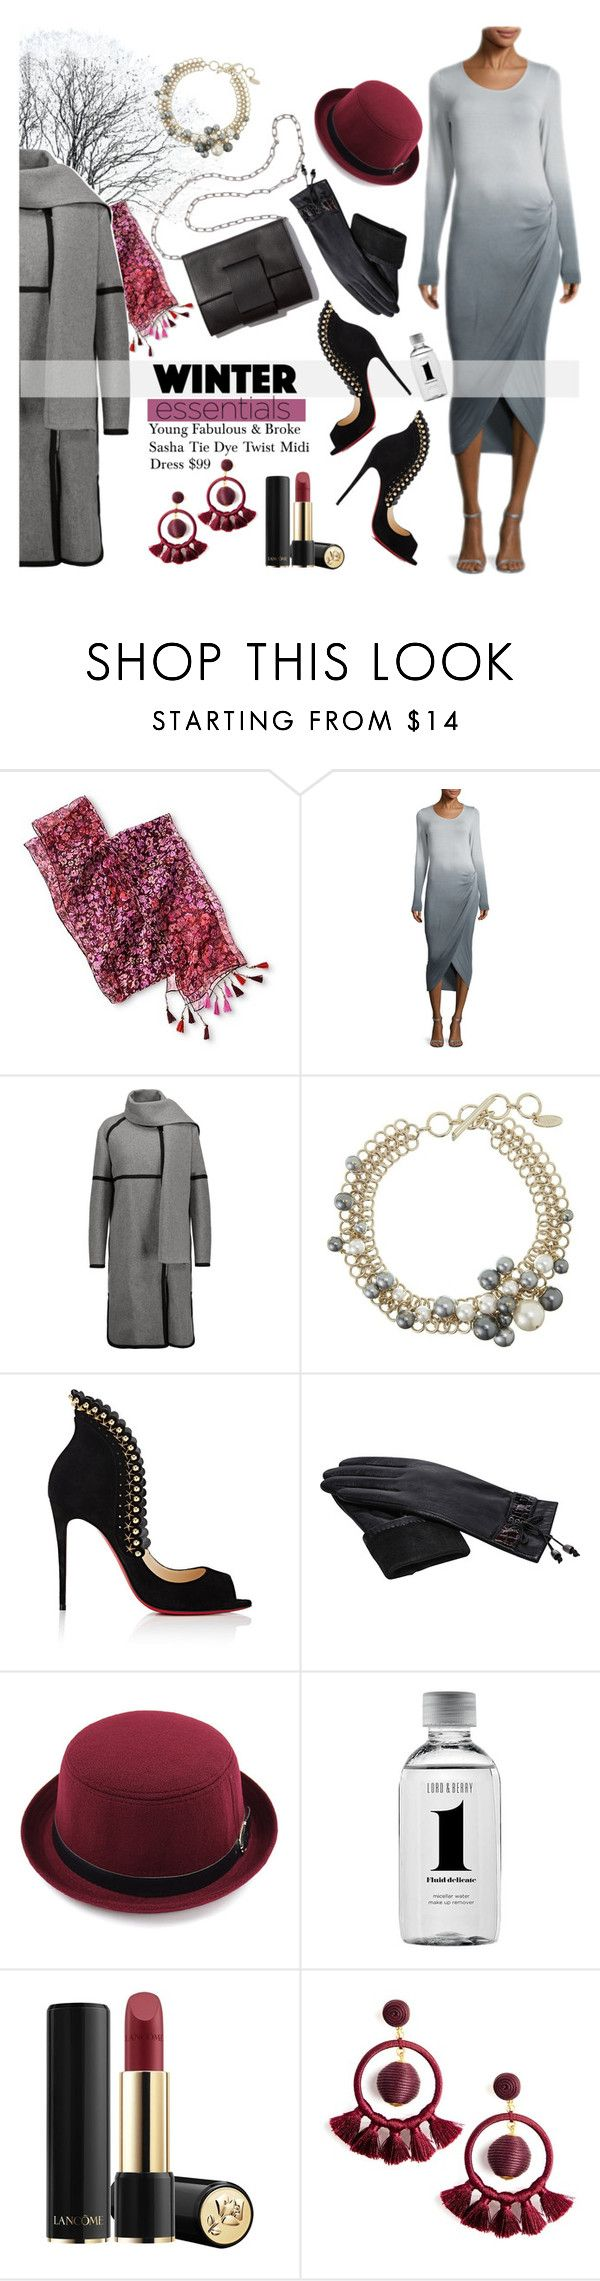 """""""Winter Dress Under $100"""" by esch103 ❤ liked on Polyvore featuring Belstaff, MM6 Maison Margiela, Lanvin, Christian Louboutin, Lord & Berry, Lancôme, dress, under100, winterstyle and grayandberry"""